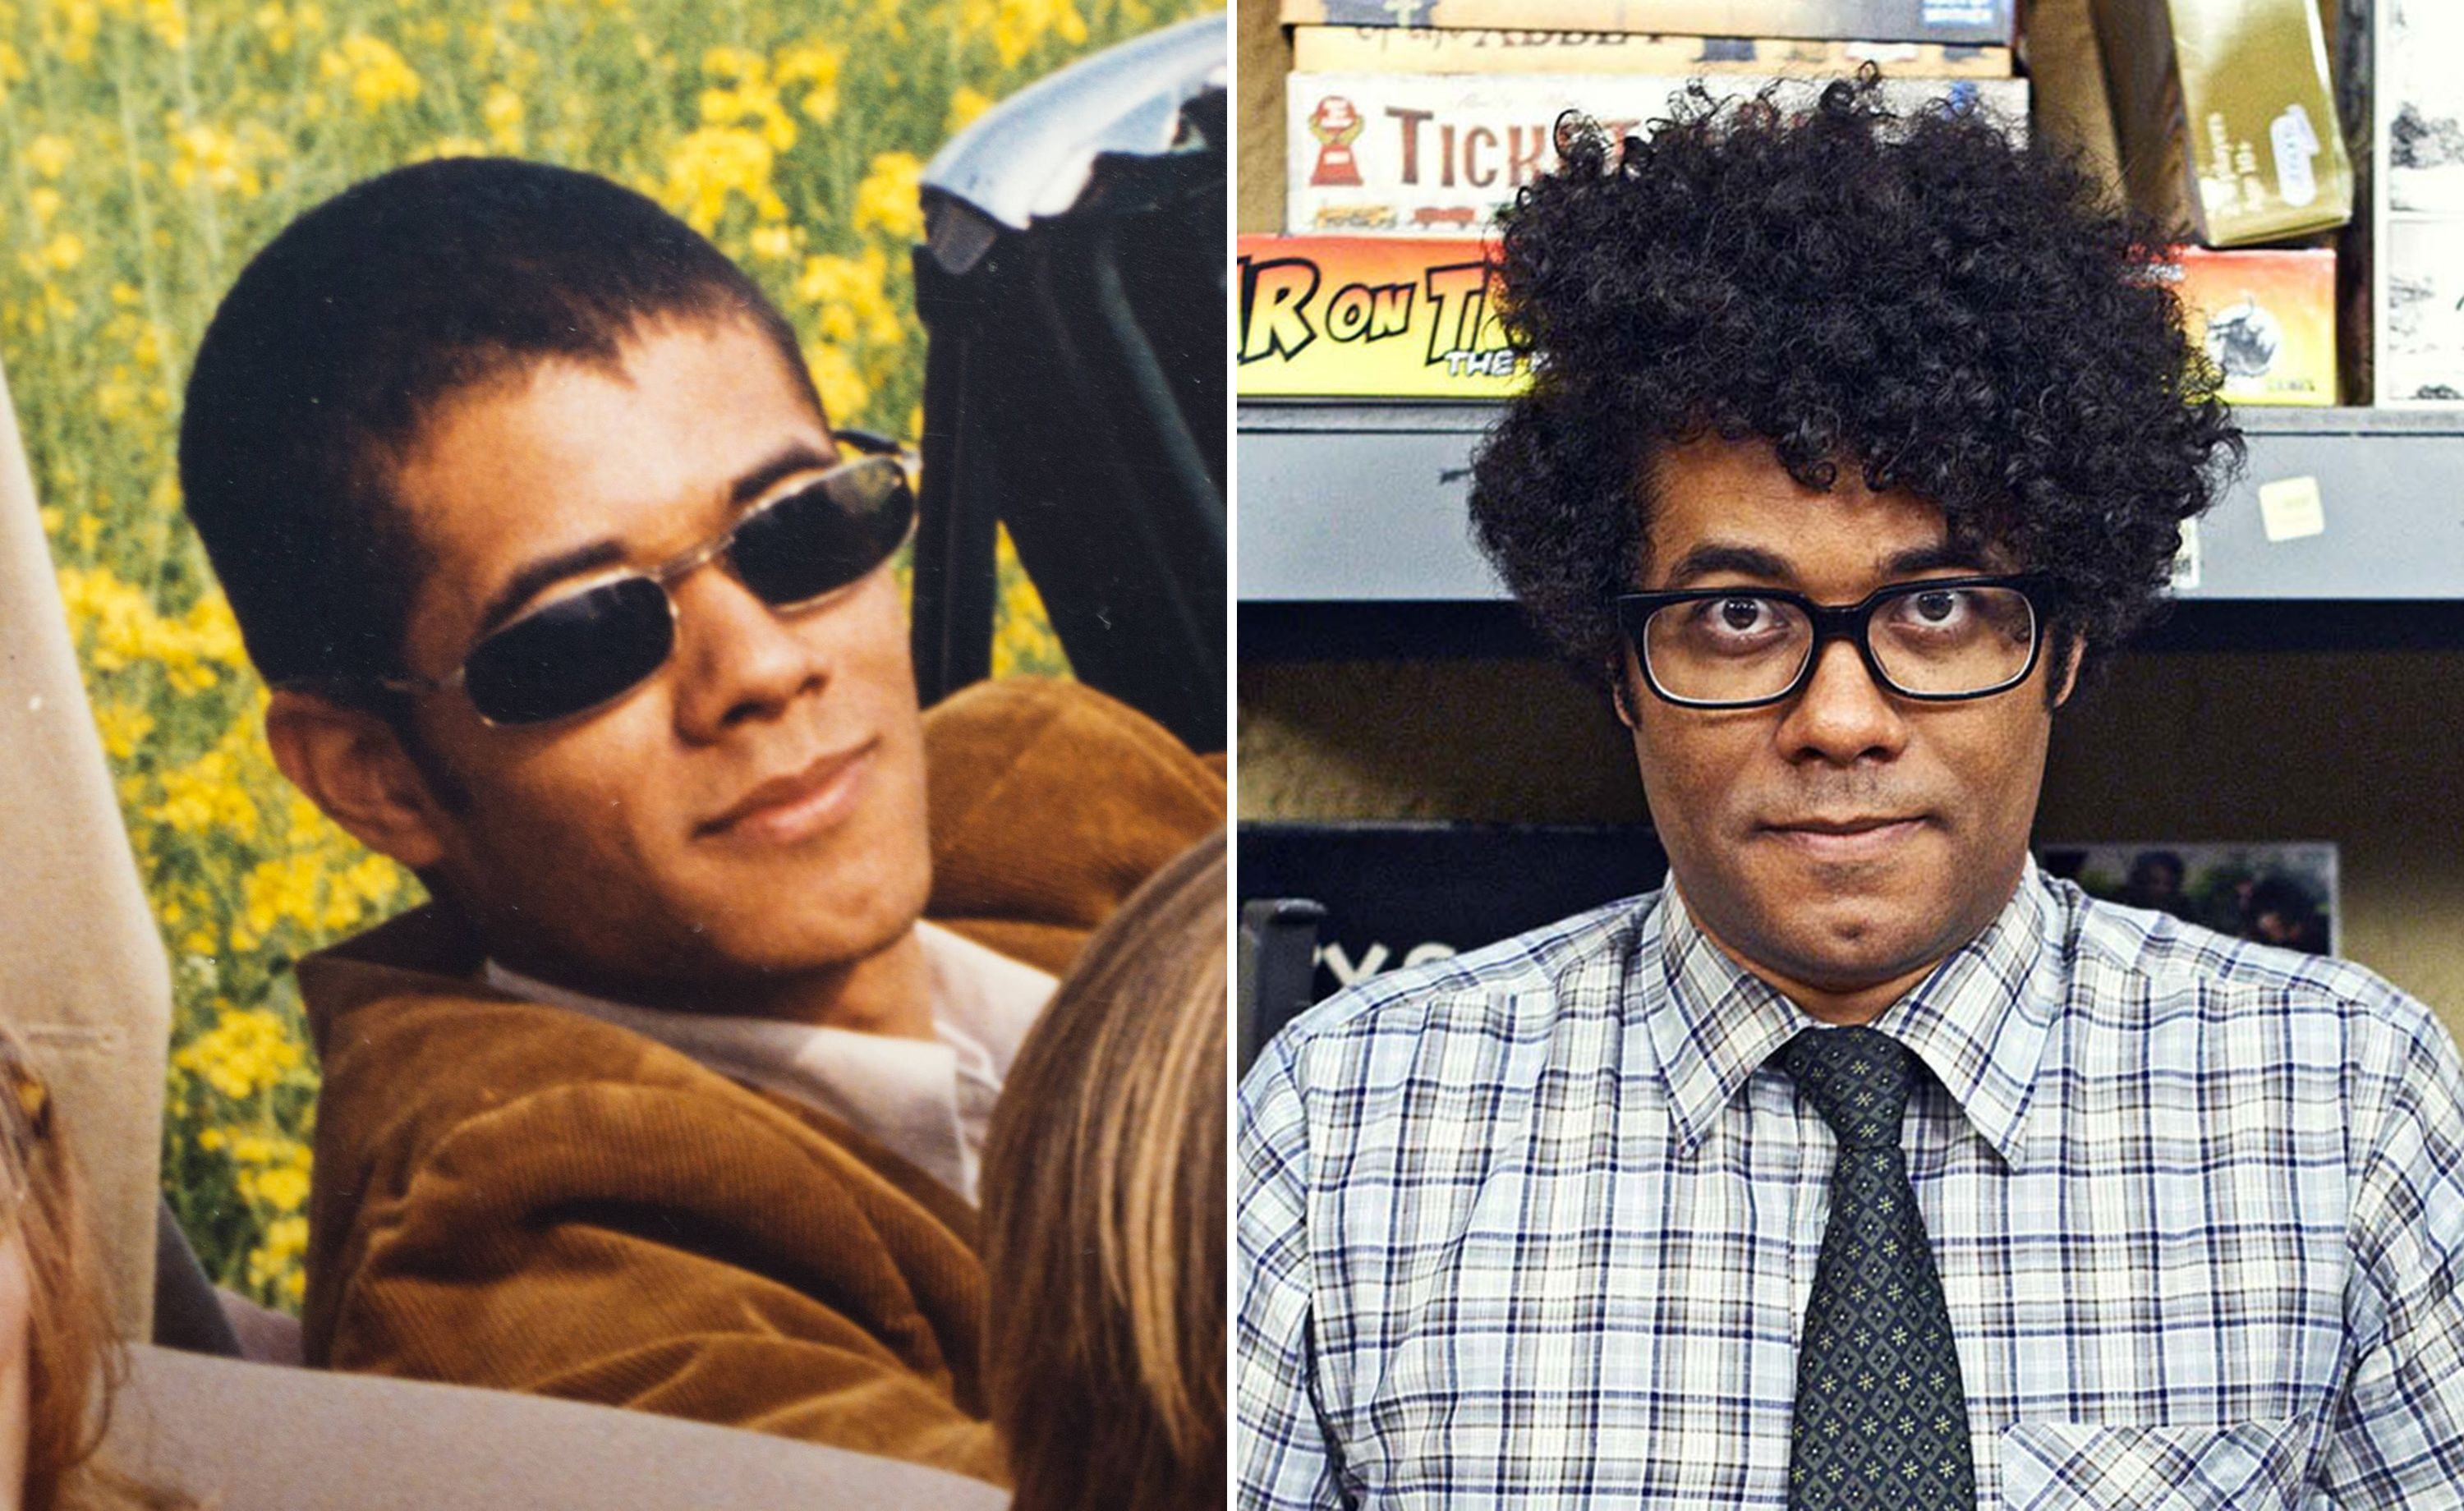 Pictures Of Richard Ayoade In His Cambridge Days Emerge Online